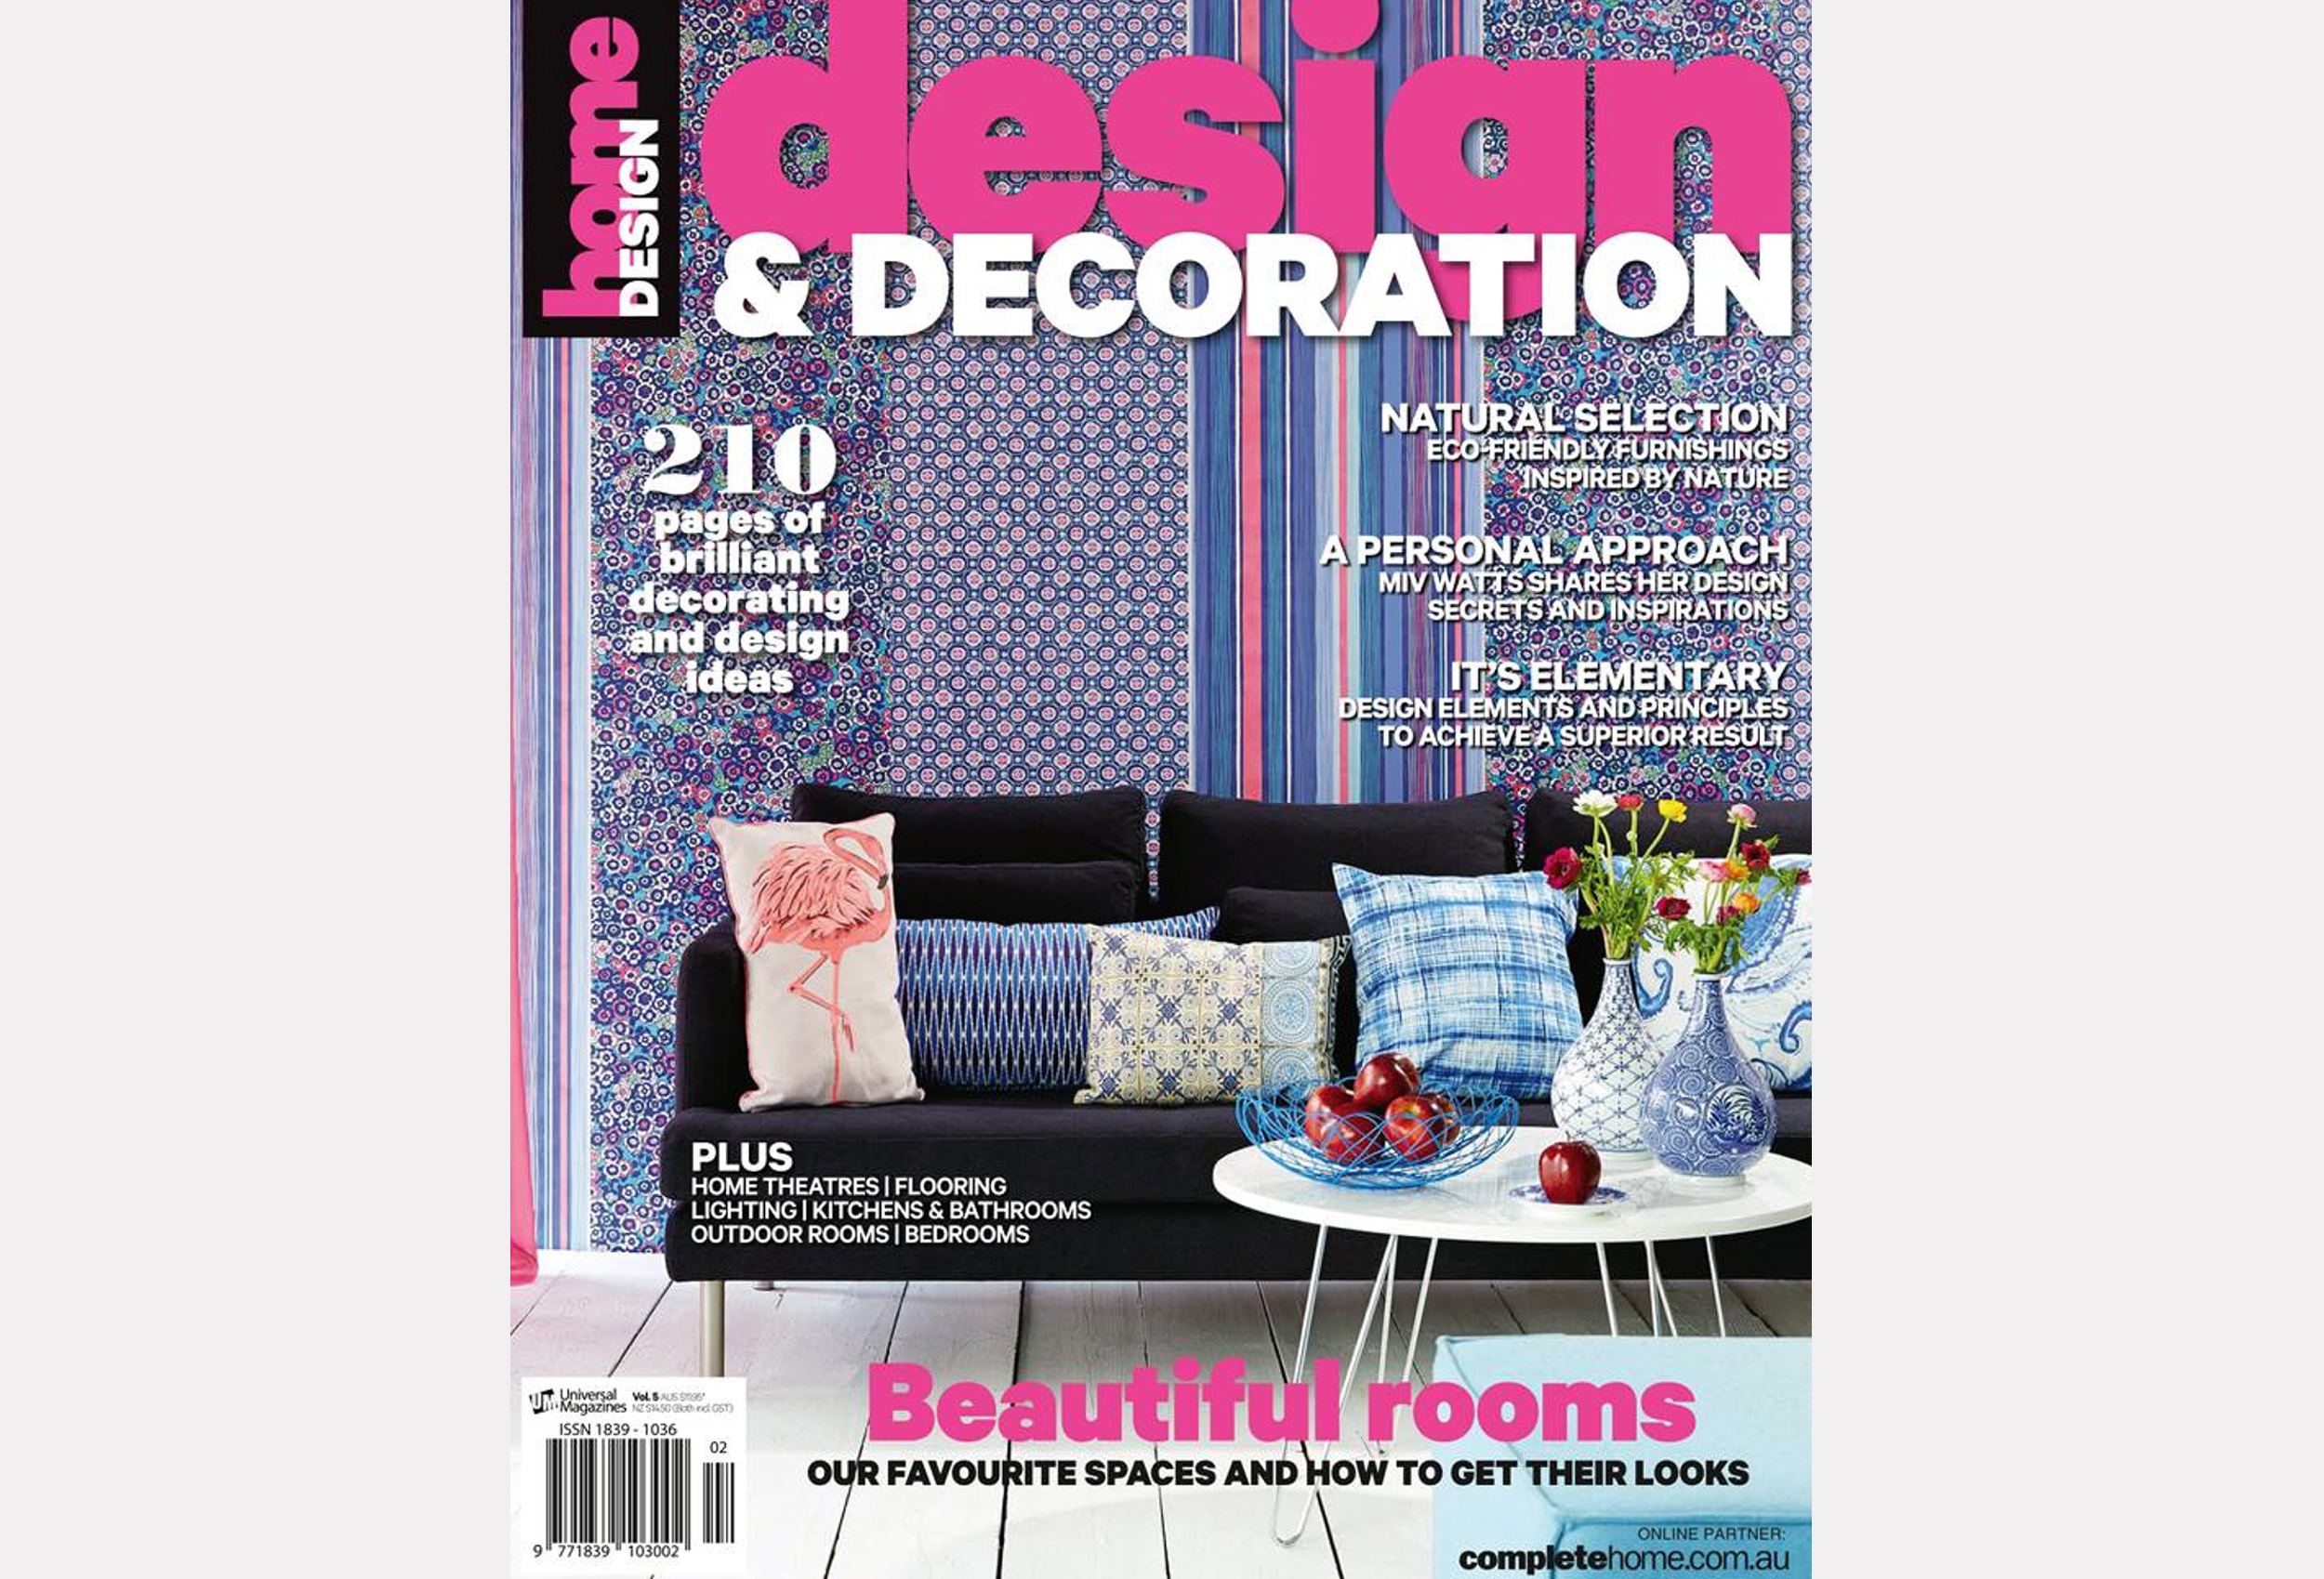 Design and Decoration Magazine October  2014-1a.jpg